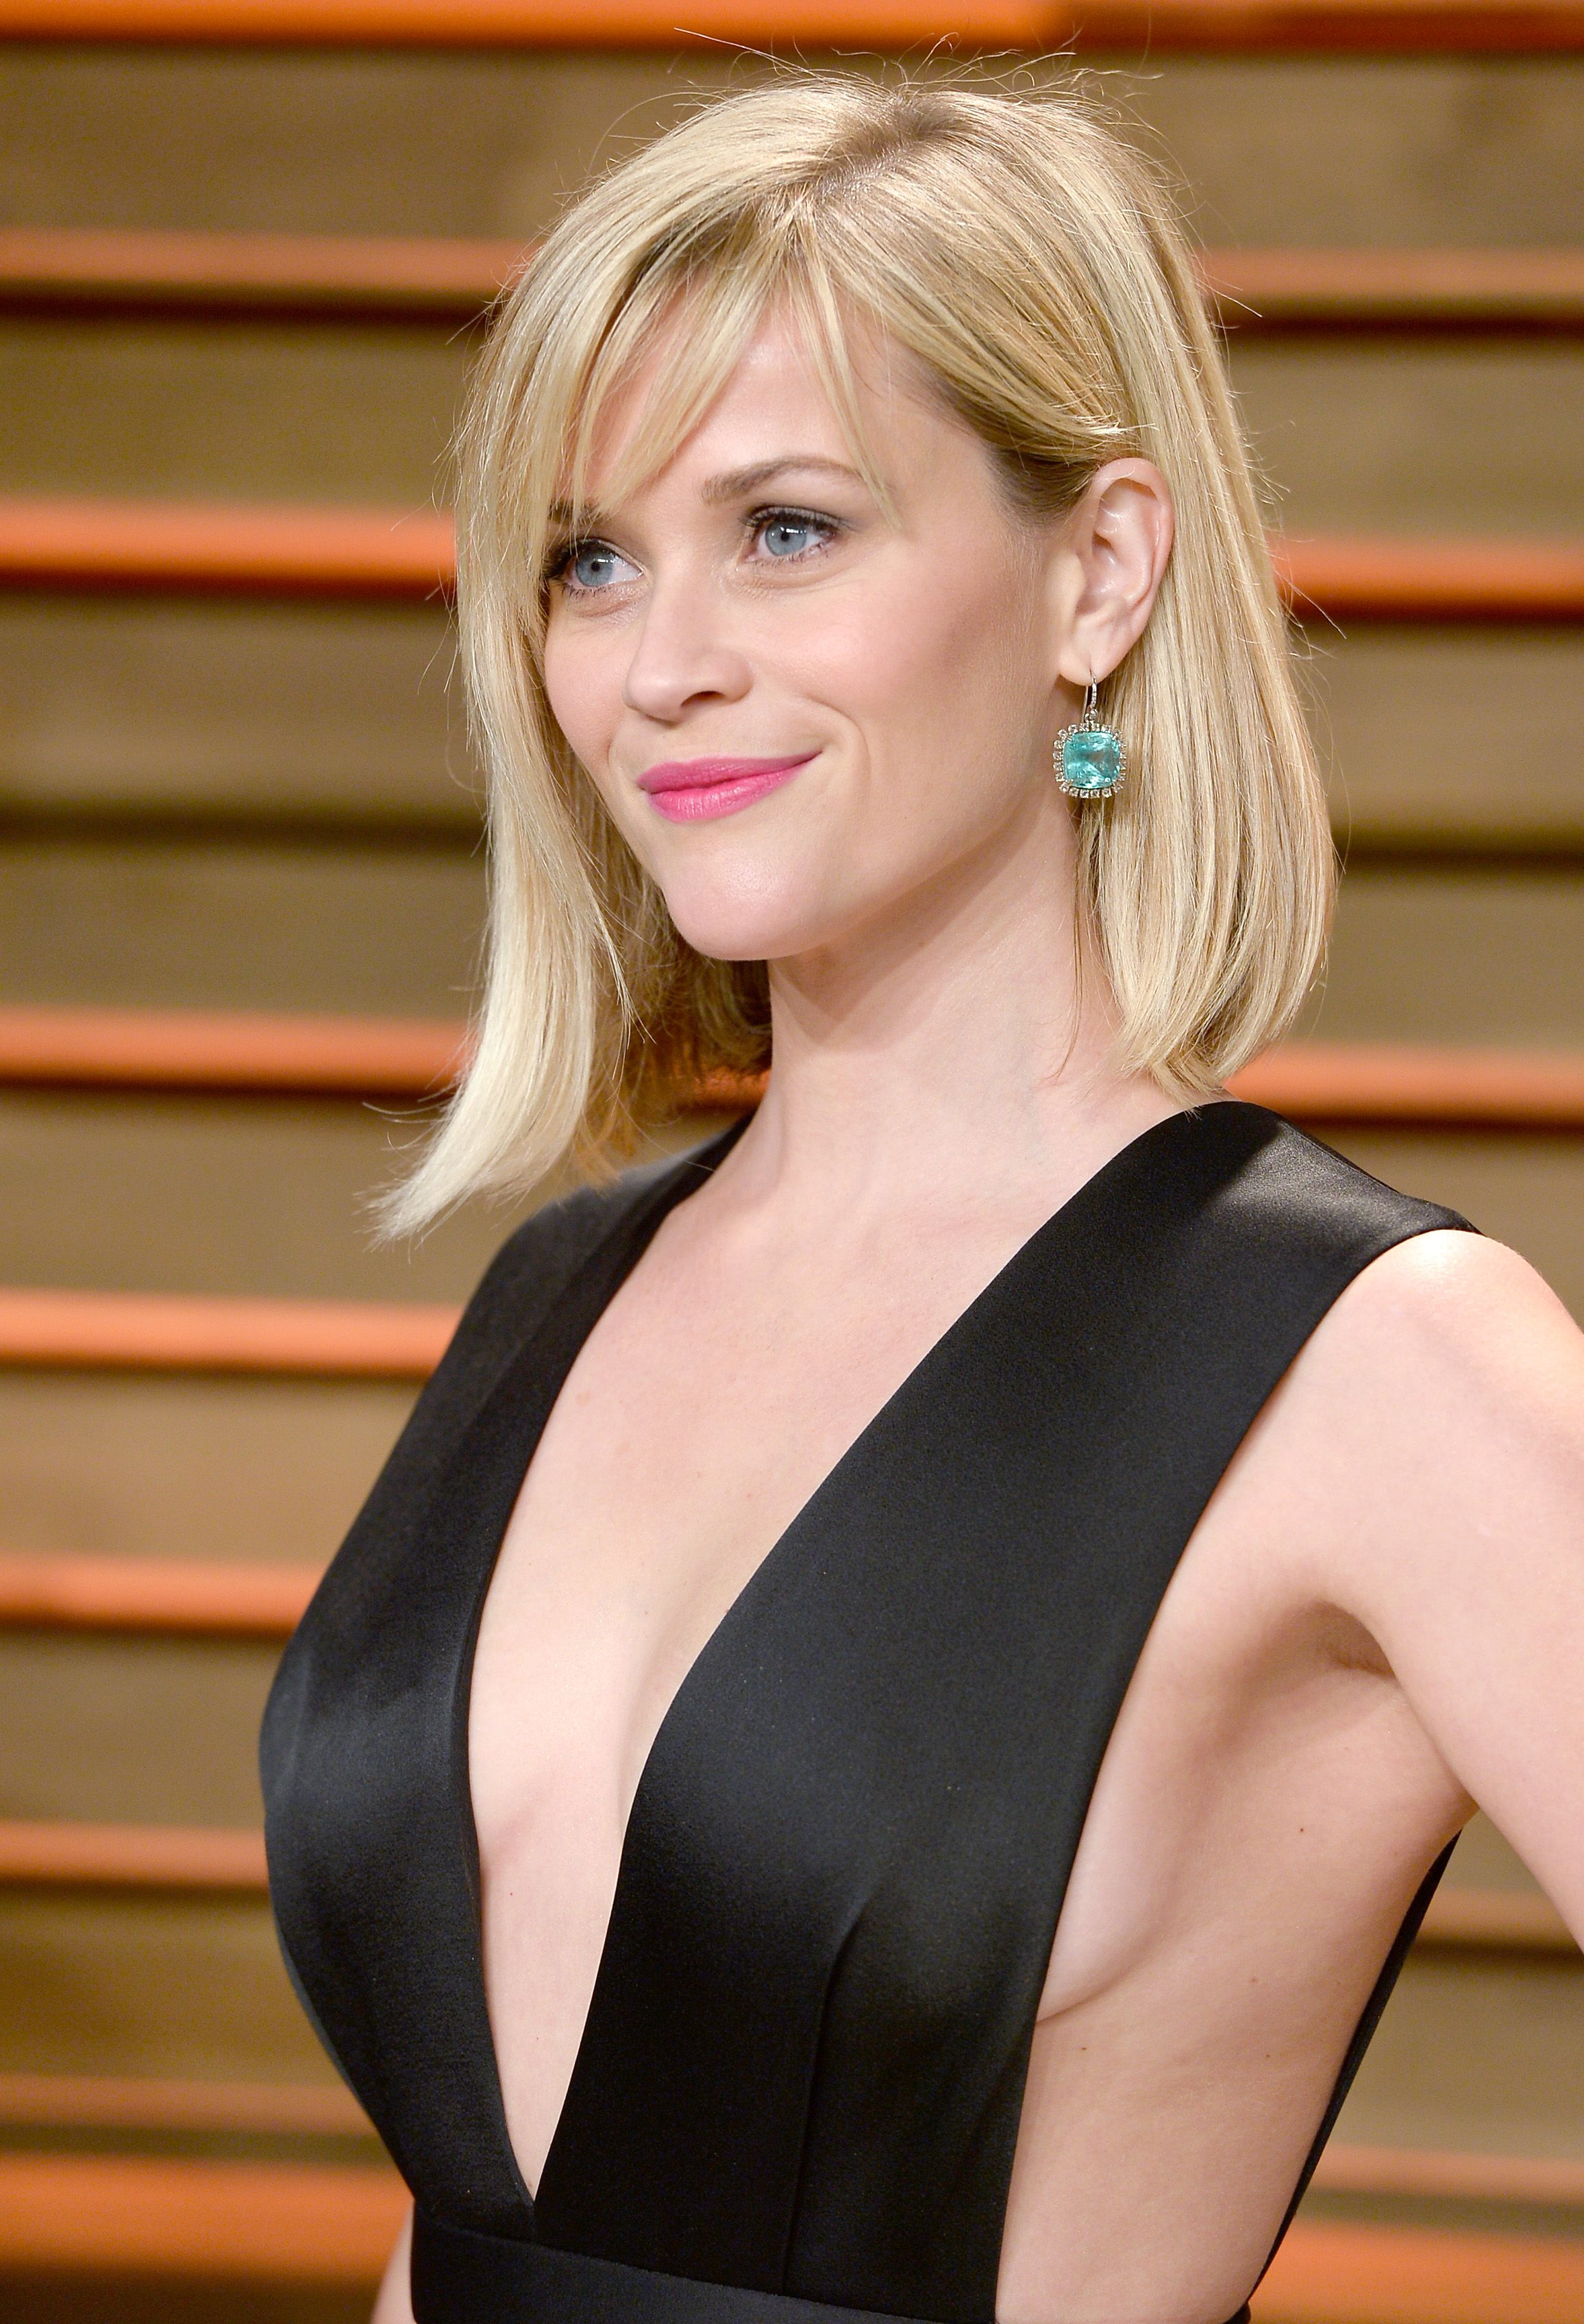 Sideboobs Reese Witherspoon naked (17 photo), Sexy, Hot, Instagram, braless 2018